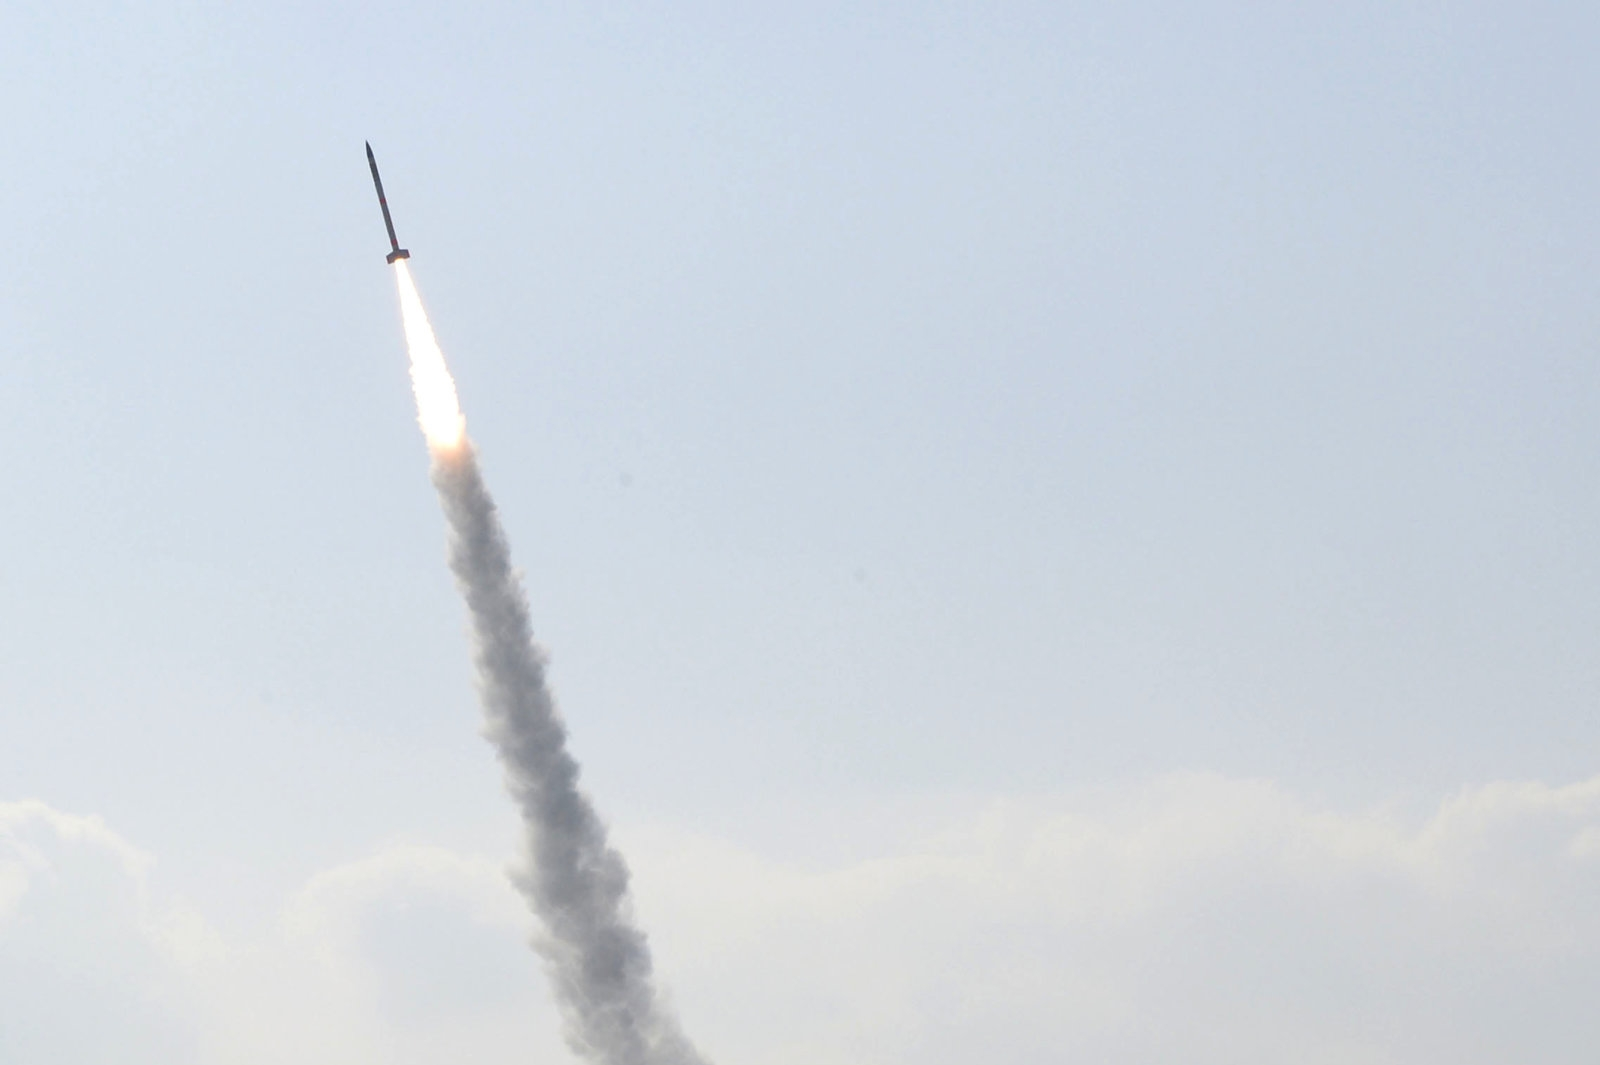 Japan launches smallest rocket ever to carry satellite into orbit | DeviceDaily.com